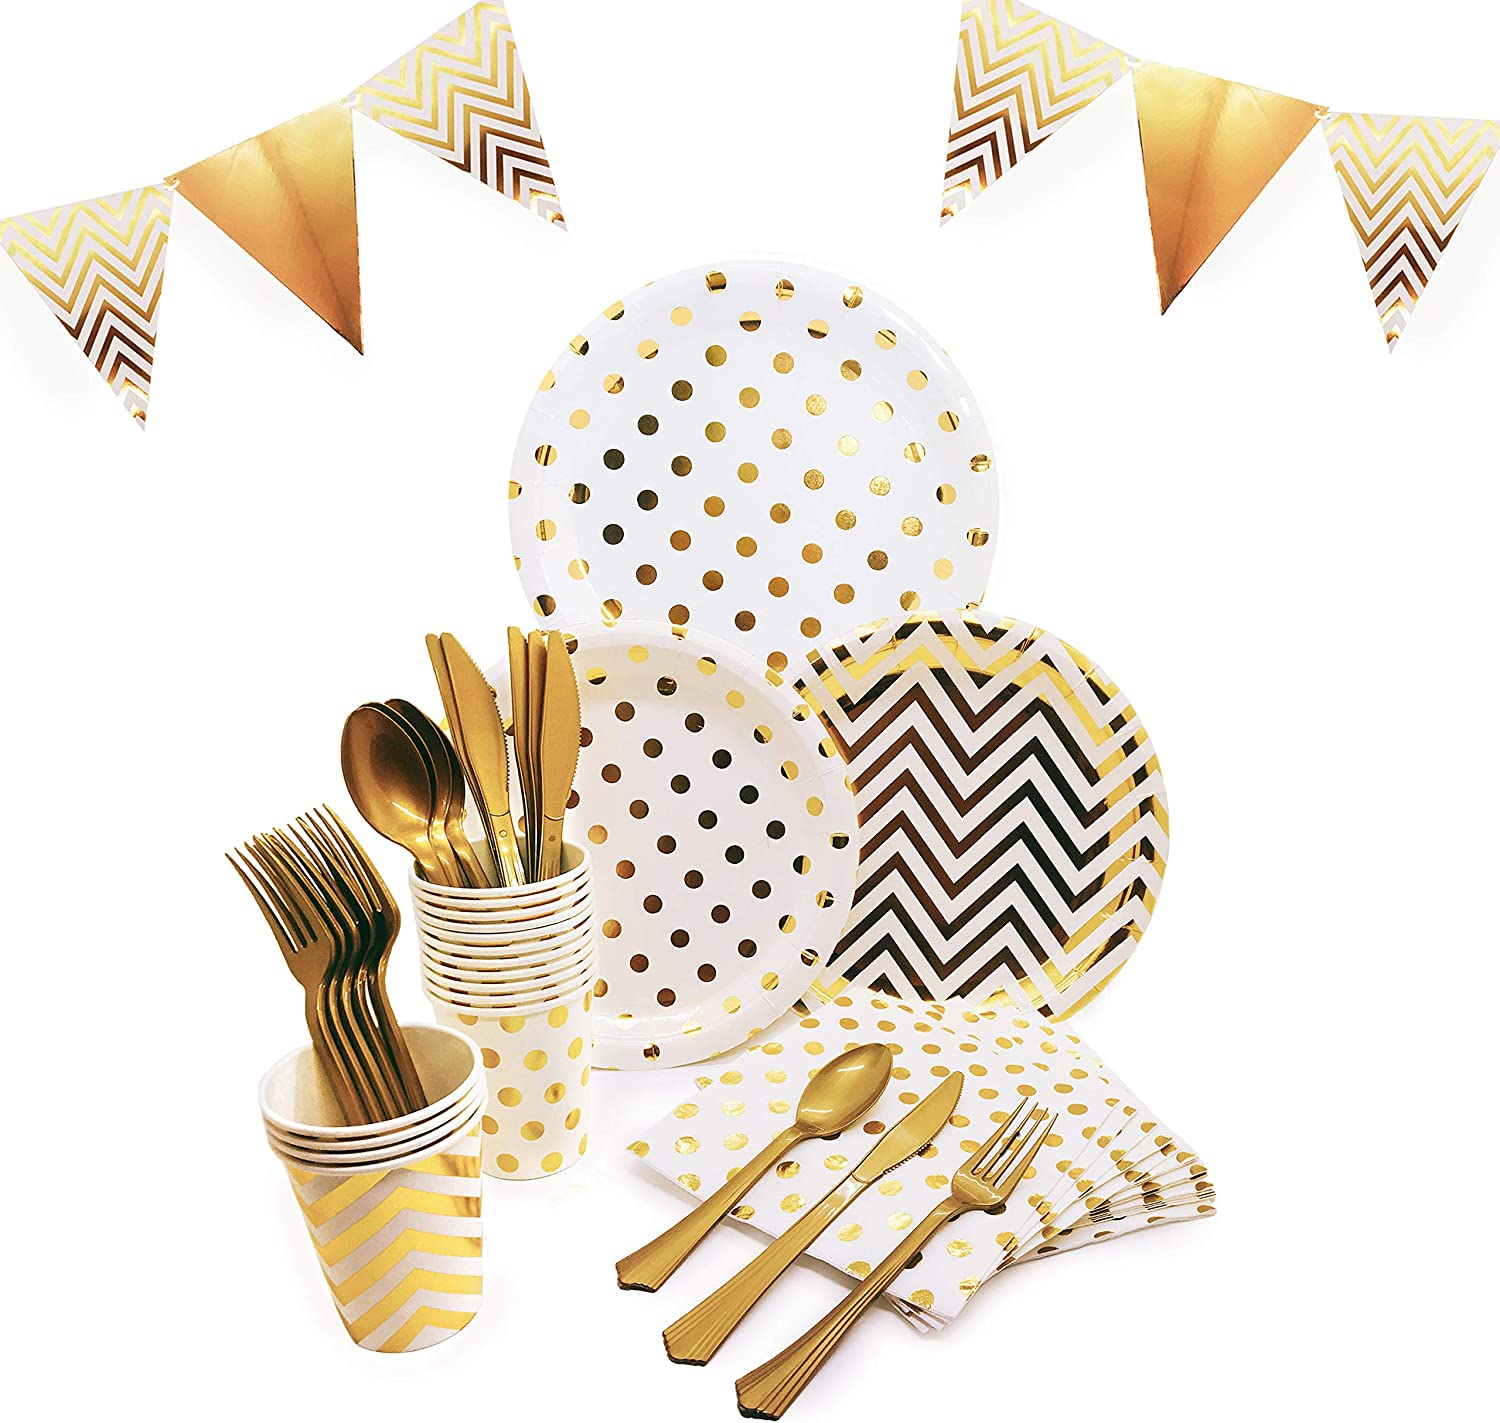 145 Piece Gold Party Supplies Set   Disposable Dinnerware Set   Polka Dot and Chevron Styles   Services 24 with Gold Cutlery Includes Plastic Knives, Spoons, Forks, Paper Plates, Napkins, Cups, Banner